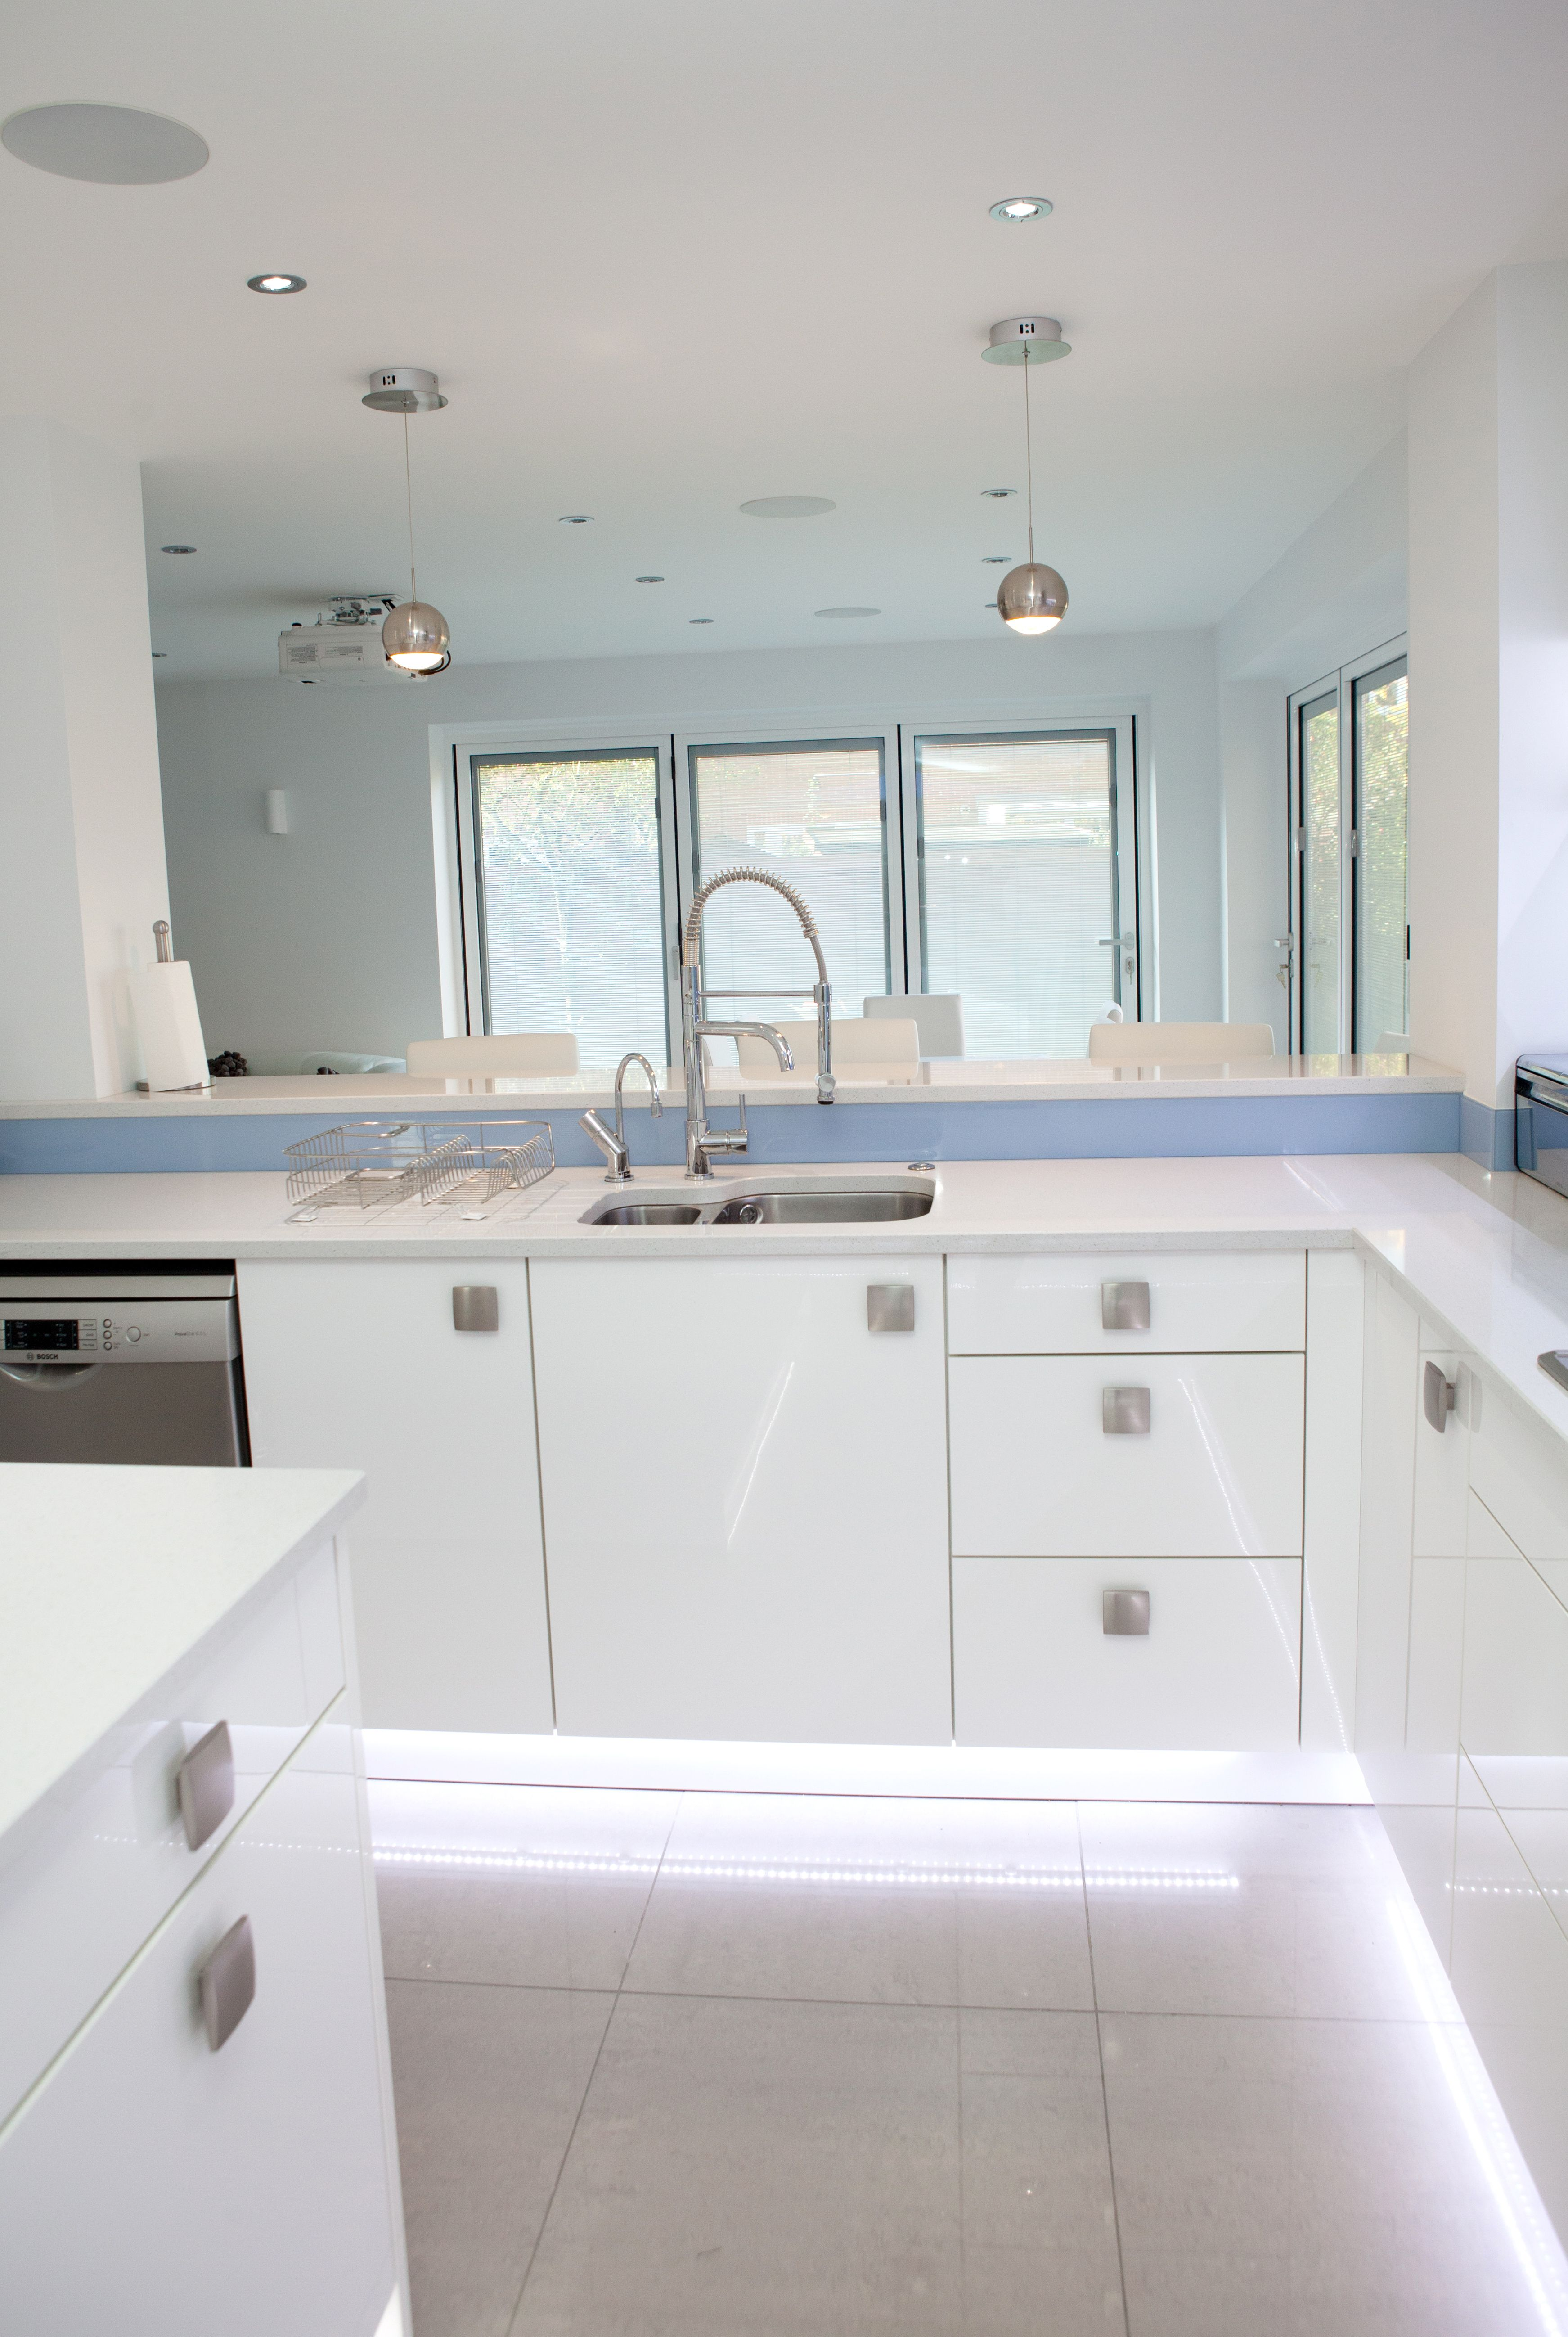 Nolte Kitchens | Glass splashbacks, Kitchens and White gloss kitchen